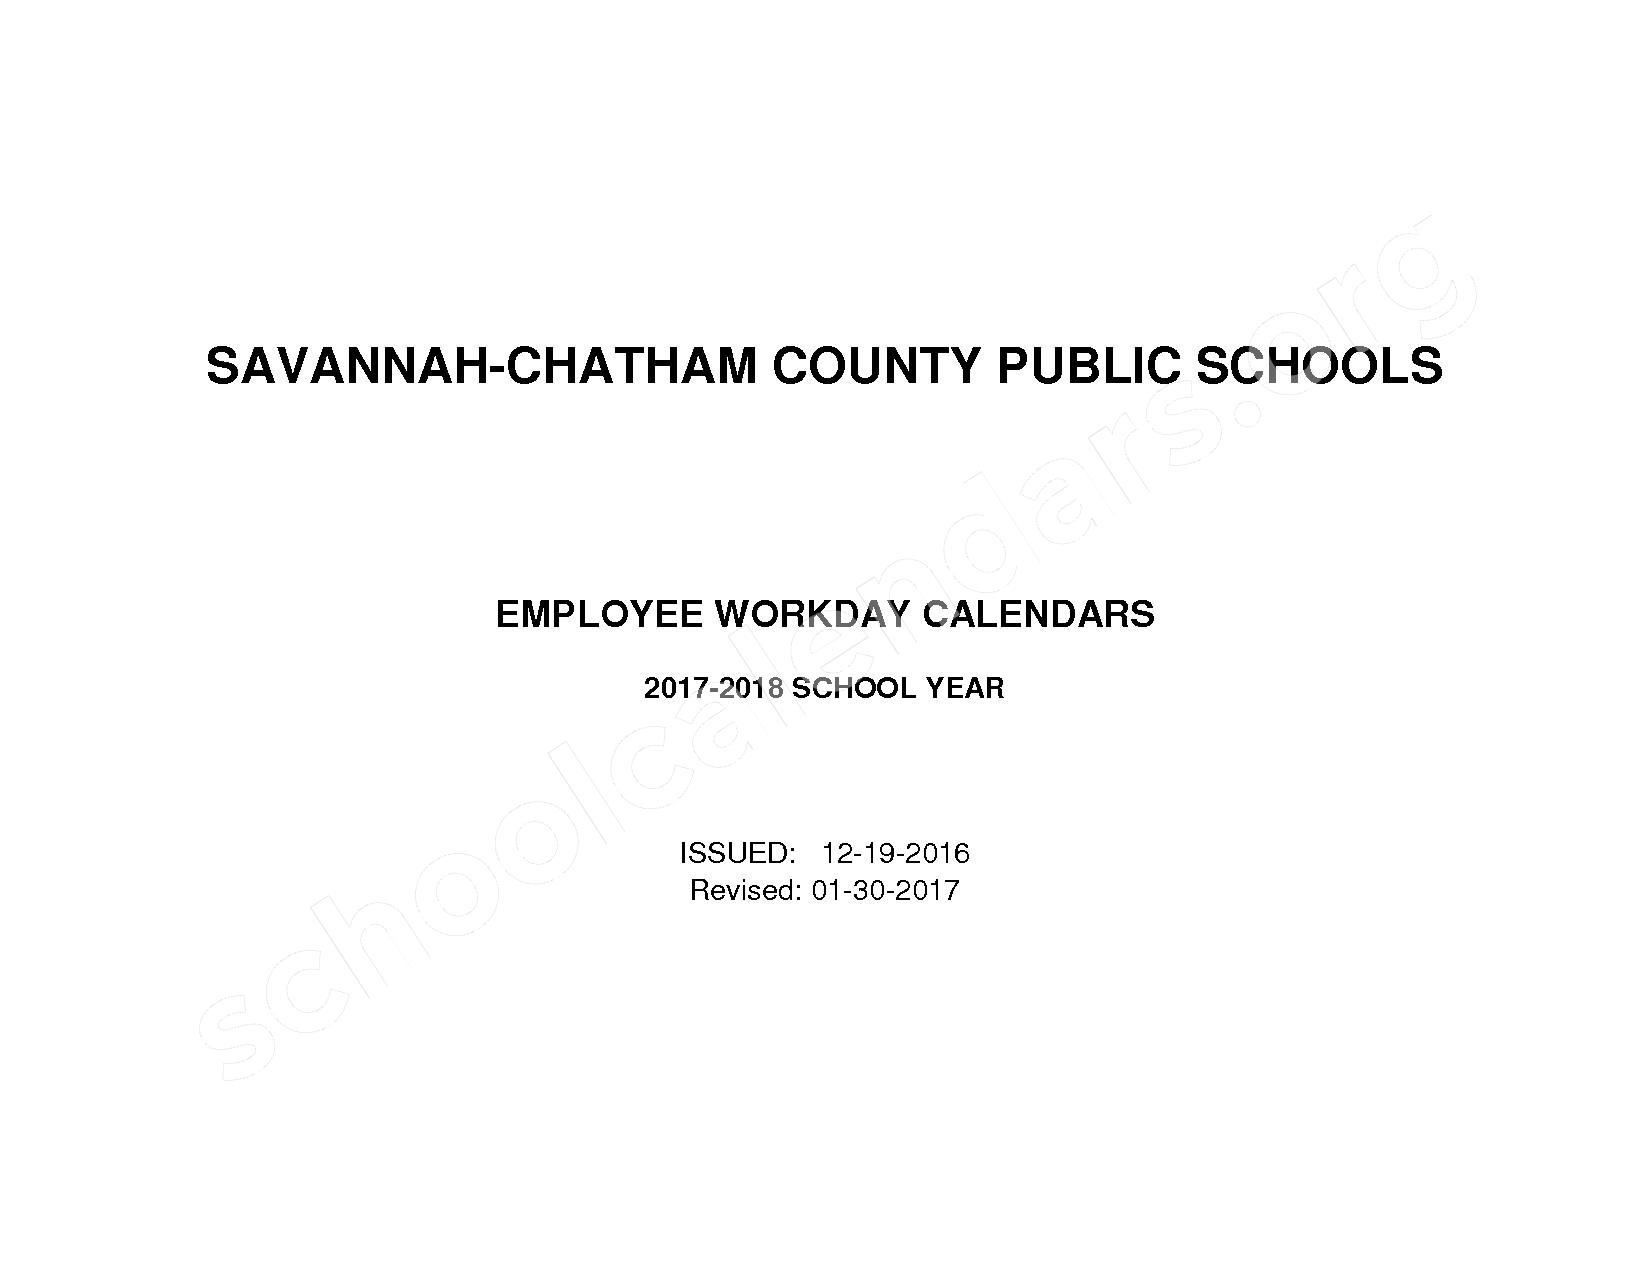 2017 - 2018 Employee Workday Calendar page 1